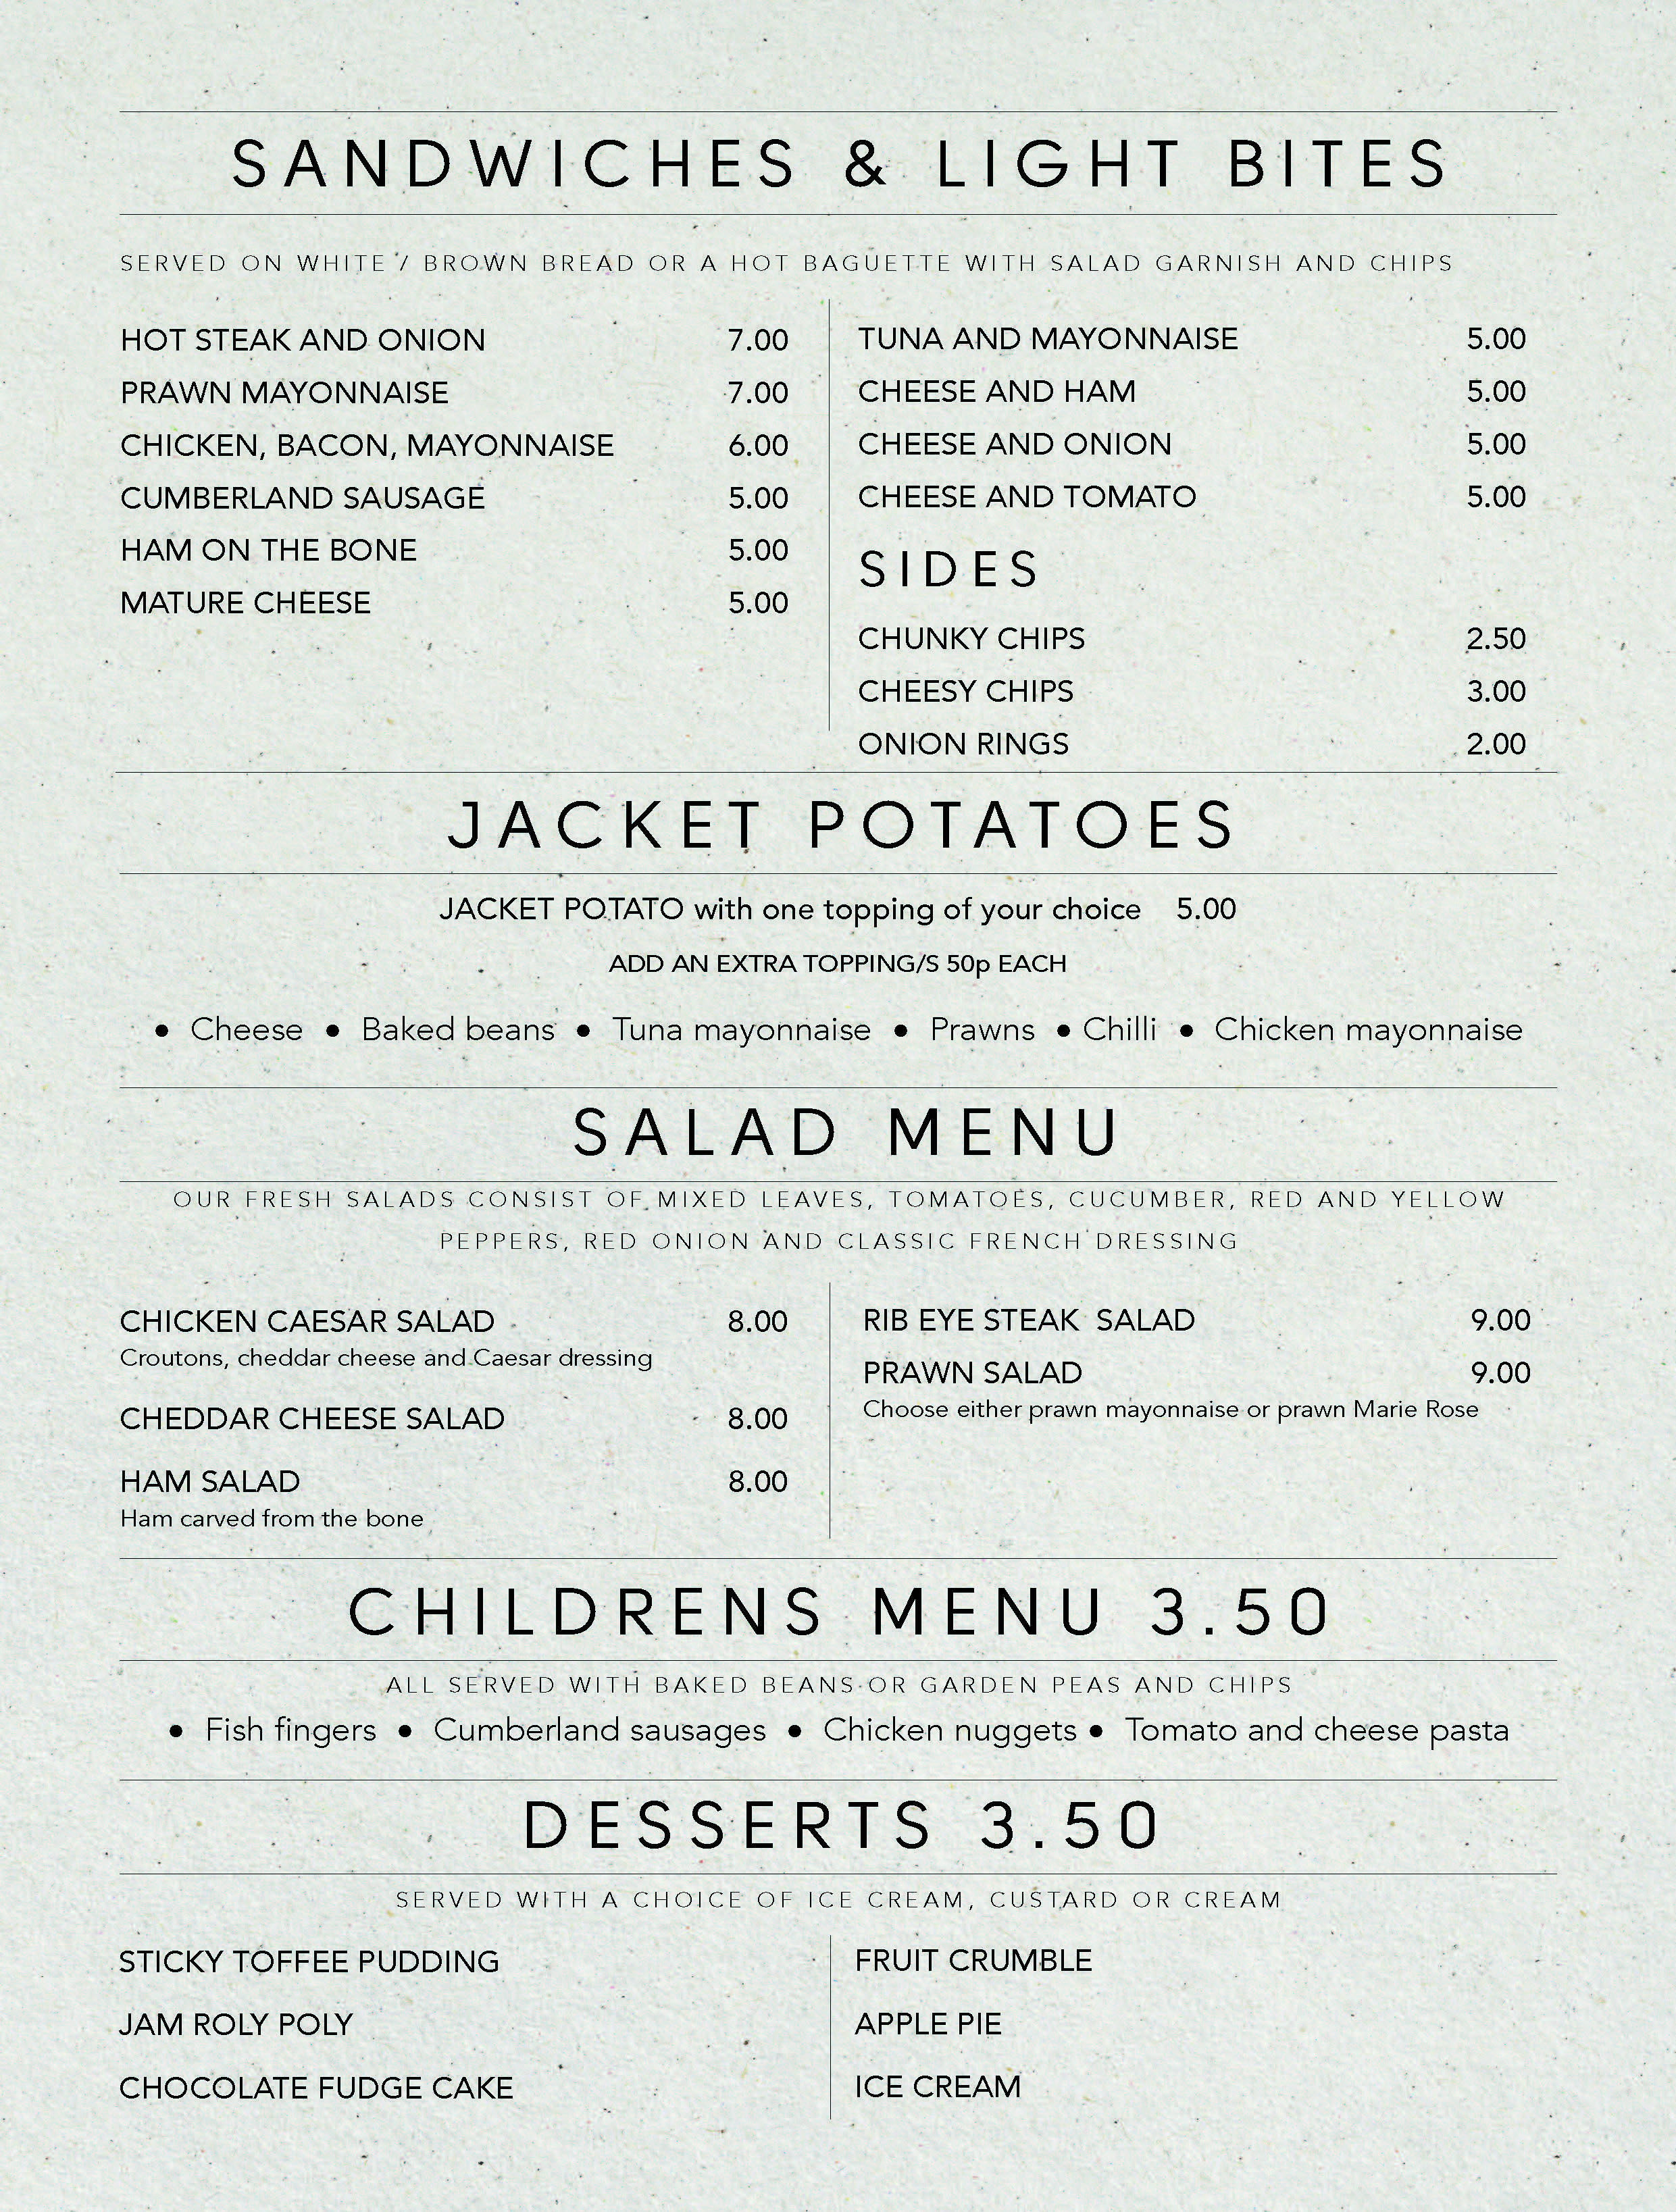 A4 Portrait Menu double sided A4MENU025_